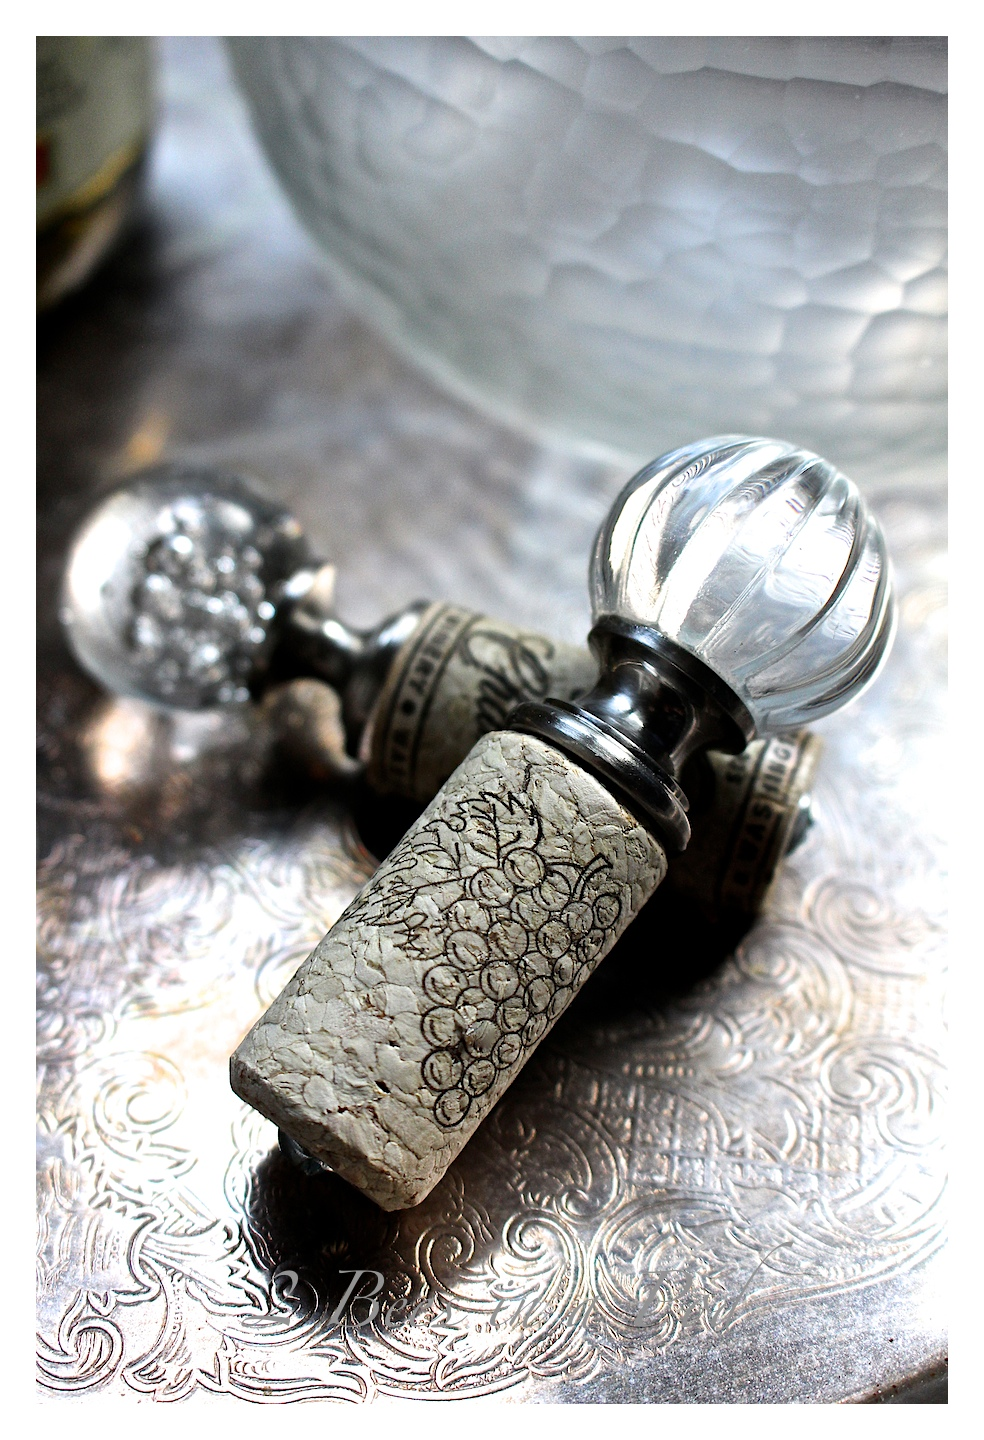 Diy bottle stoppers